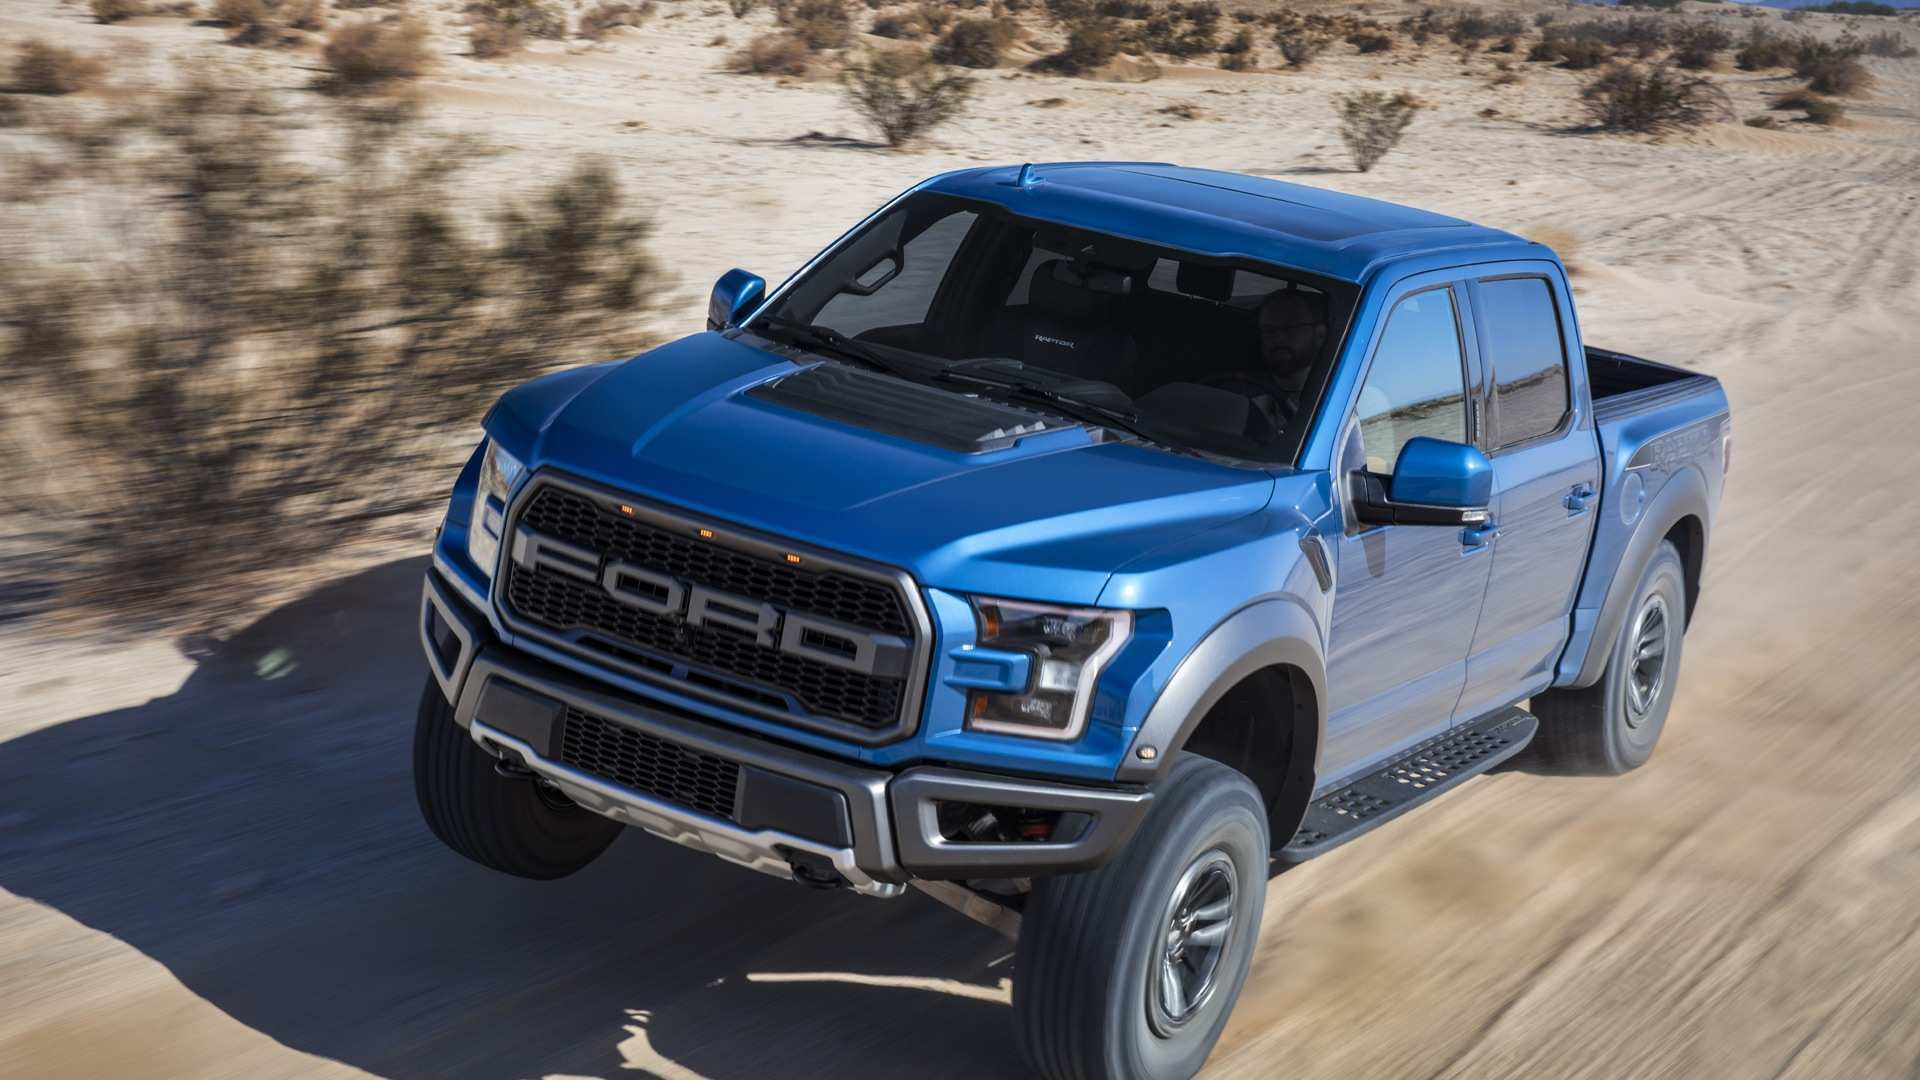 67 New 2019 Ford Velociraptor Reviews for 2019 Ford Velociraptor